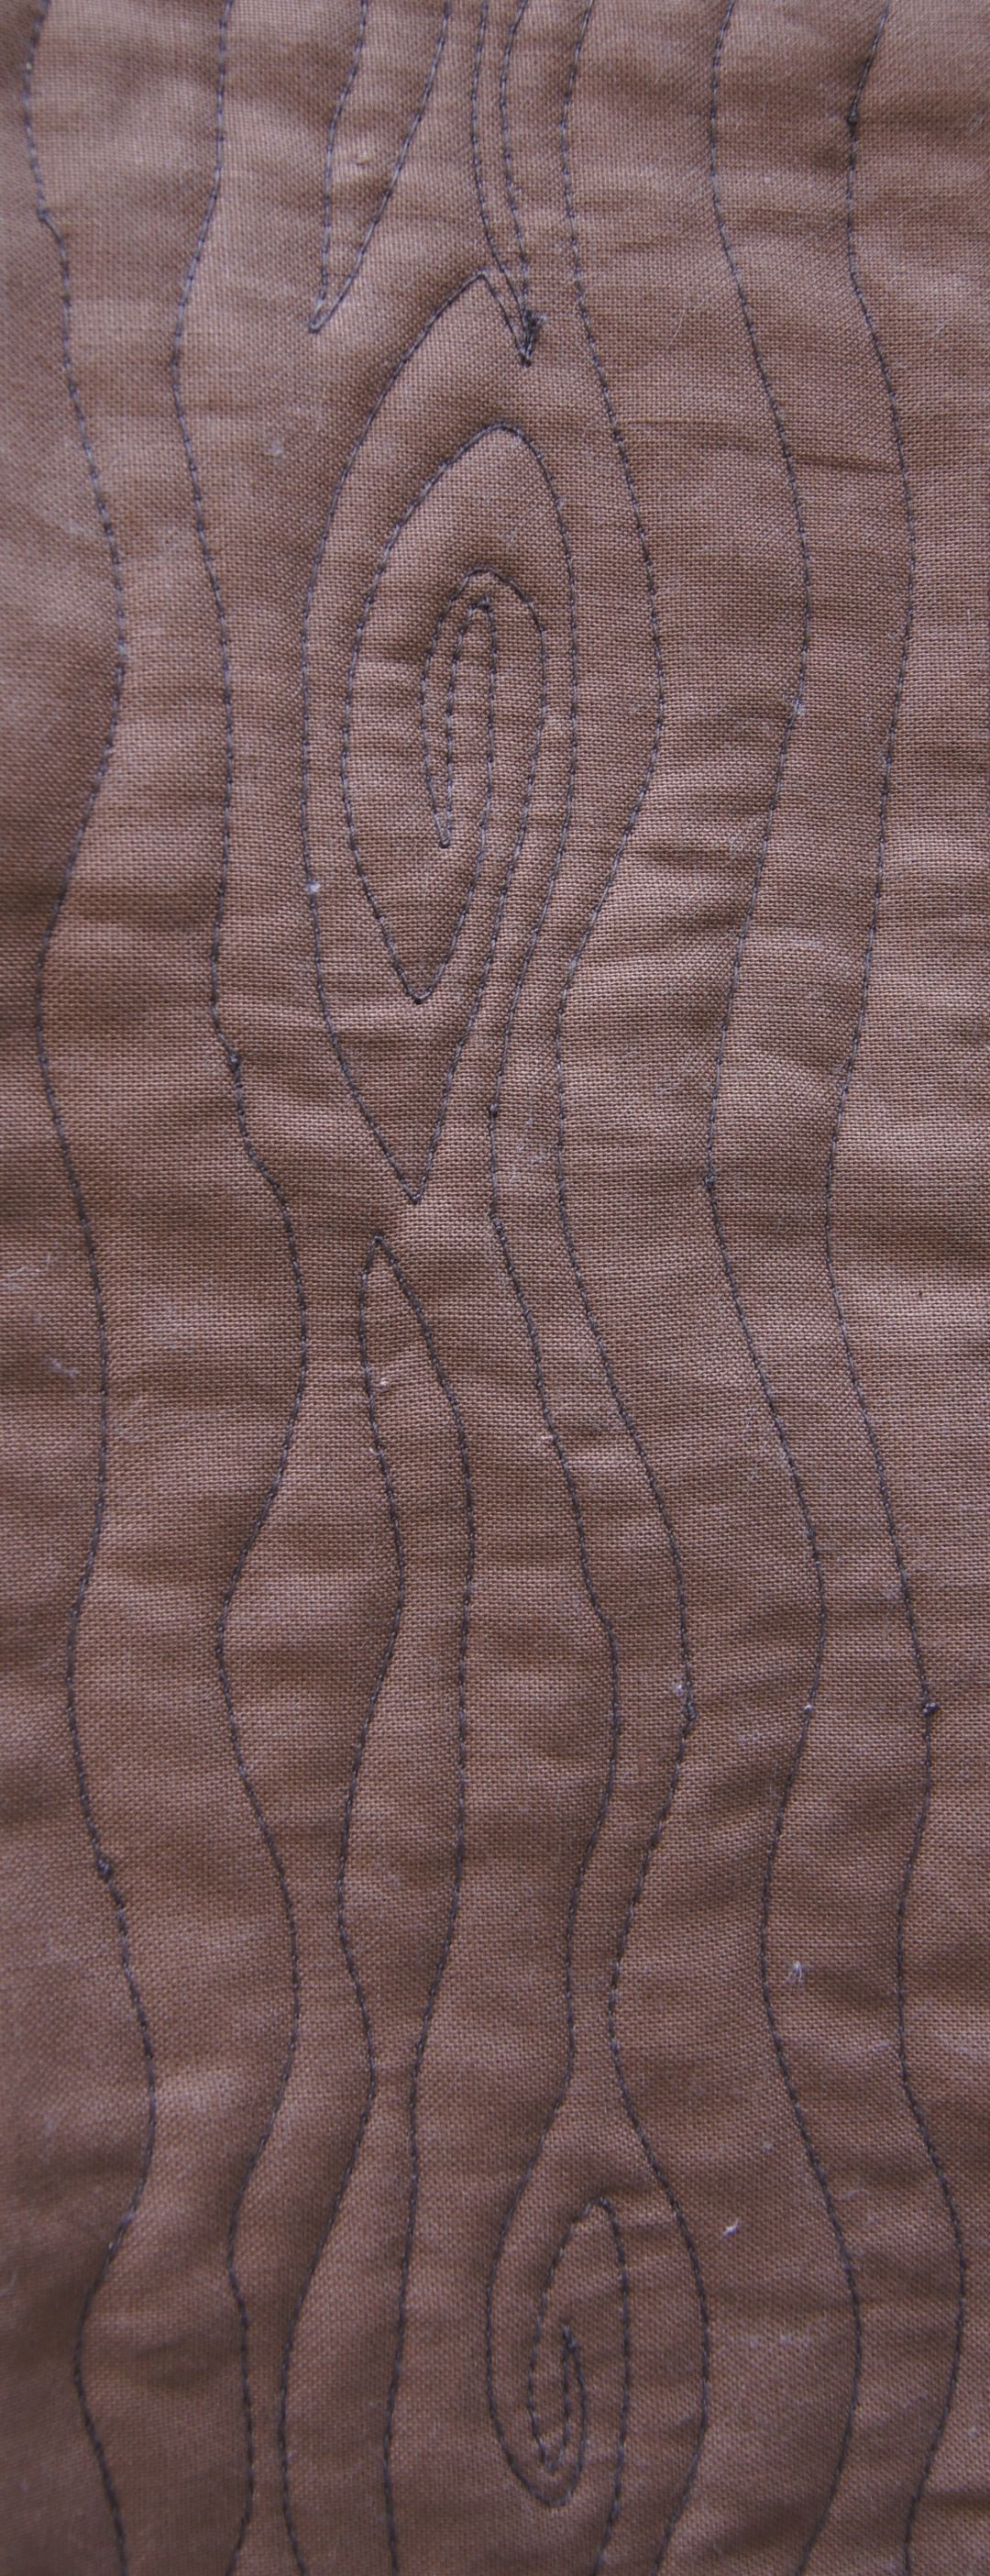 Quilting a wood grain pattern with free-motion quilting